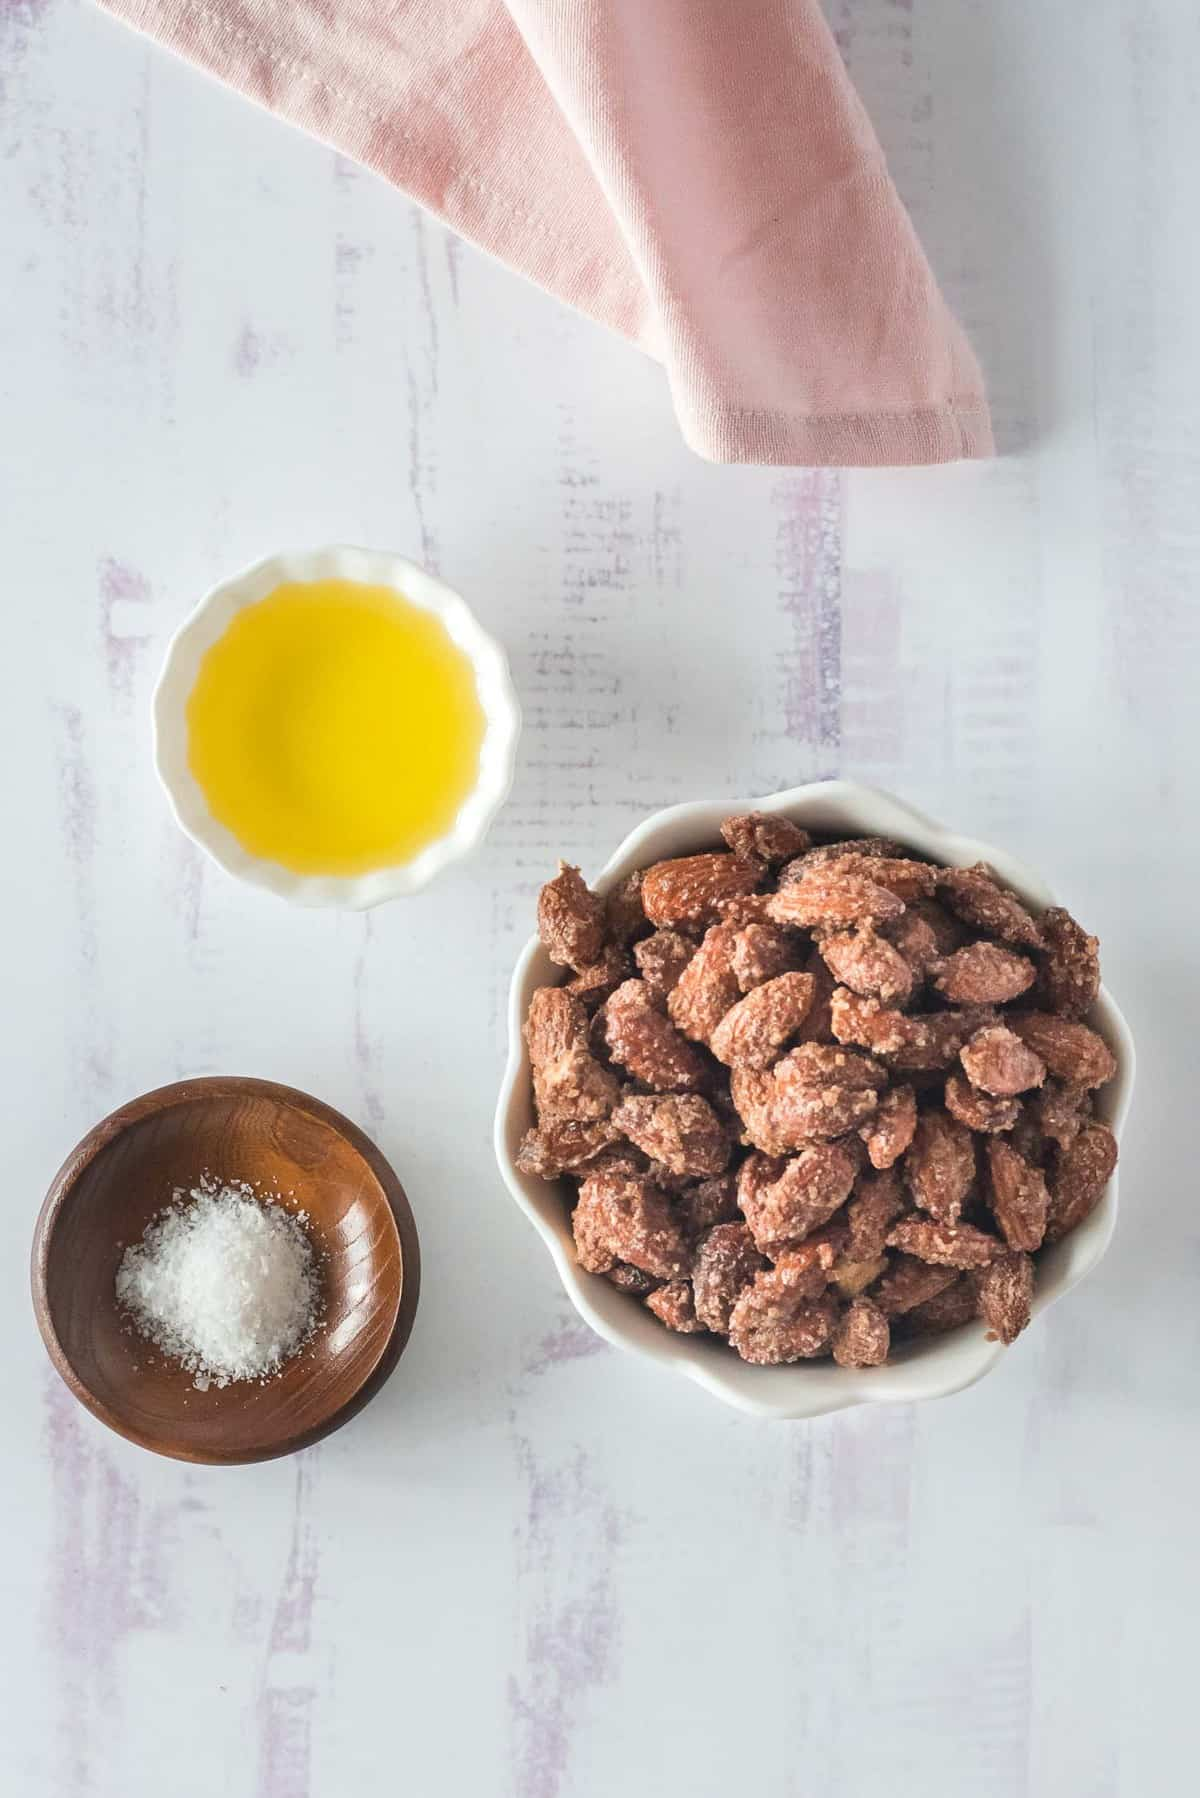 Overhead view of ingredients in bowls: almonds, salt, and oil.